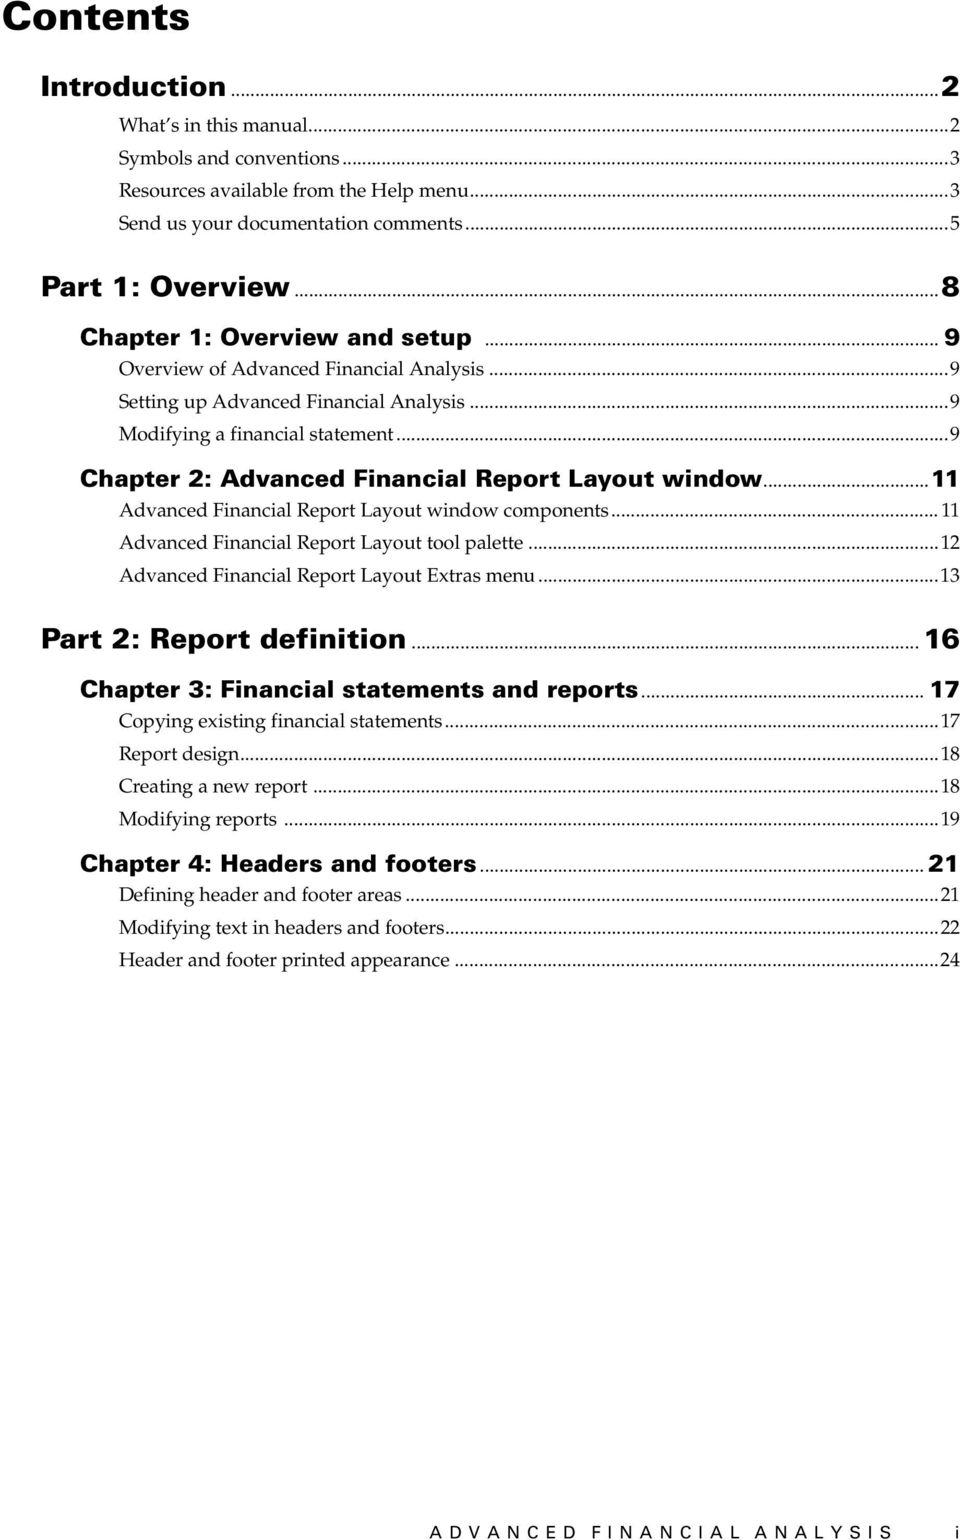 ..9 Chapter 2: Advanced Financial Report Layout window...11 Advanced Financial Report Layout window components... 11 Advanced Financial Report Layout tool palette.